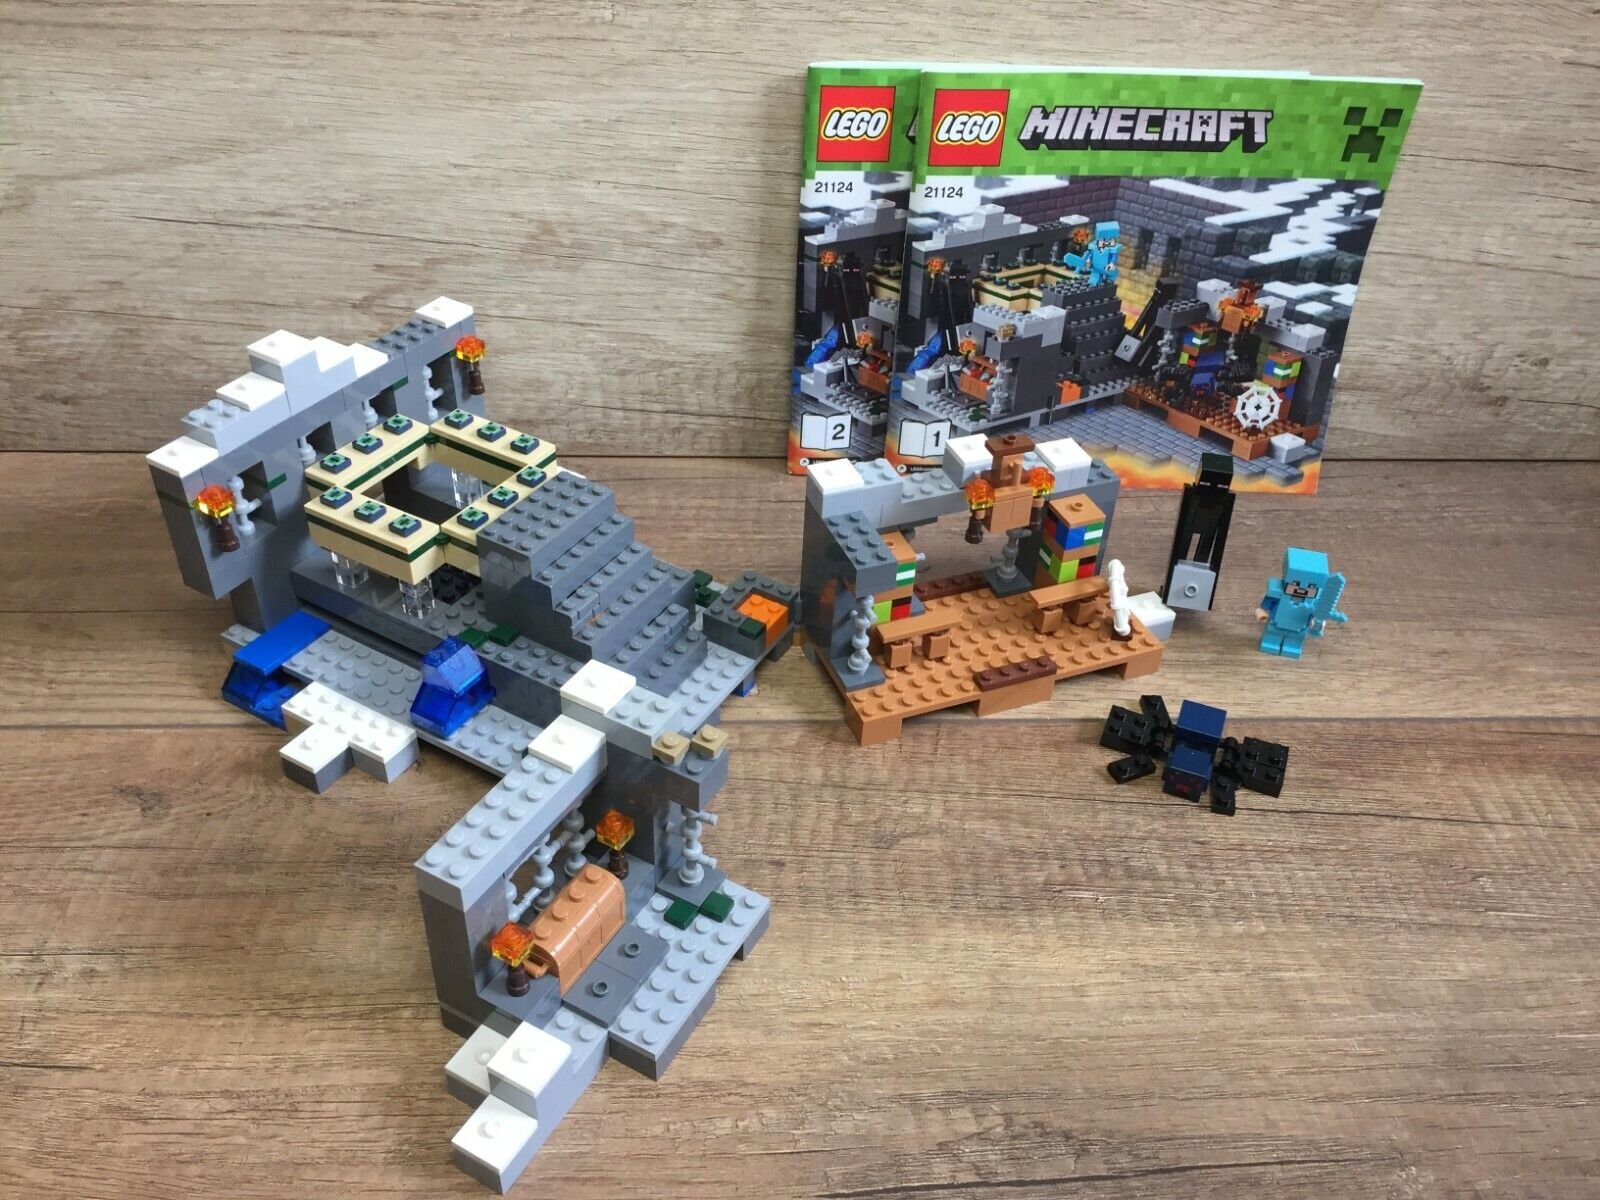 LEGO 21124 the end portale Minecraft il  portale end  edizione limitata